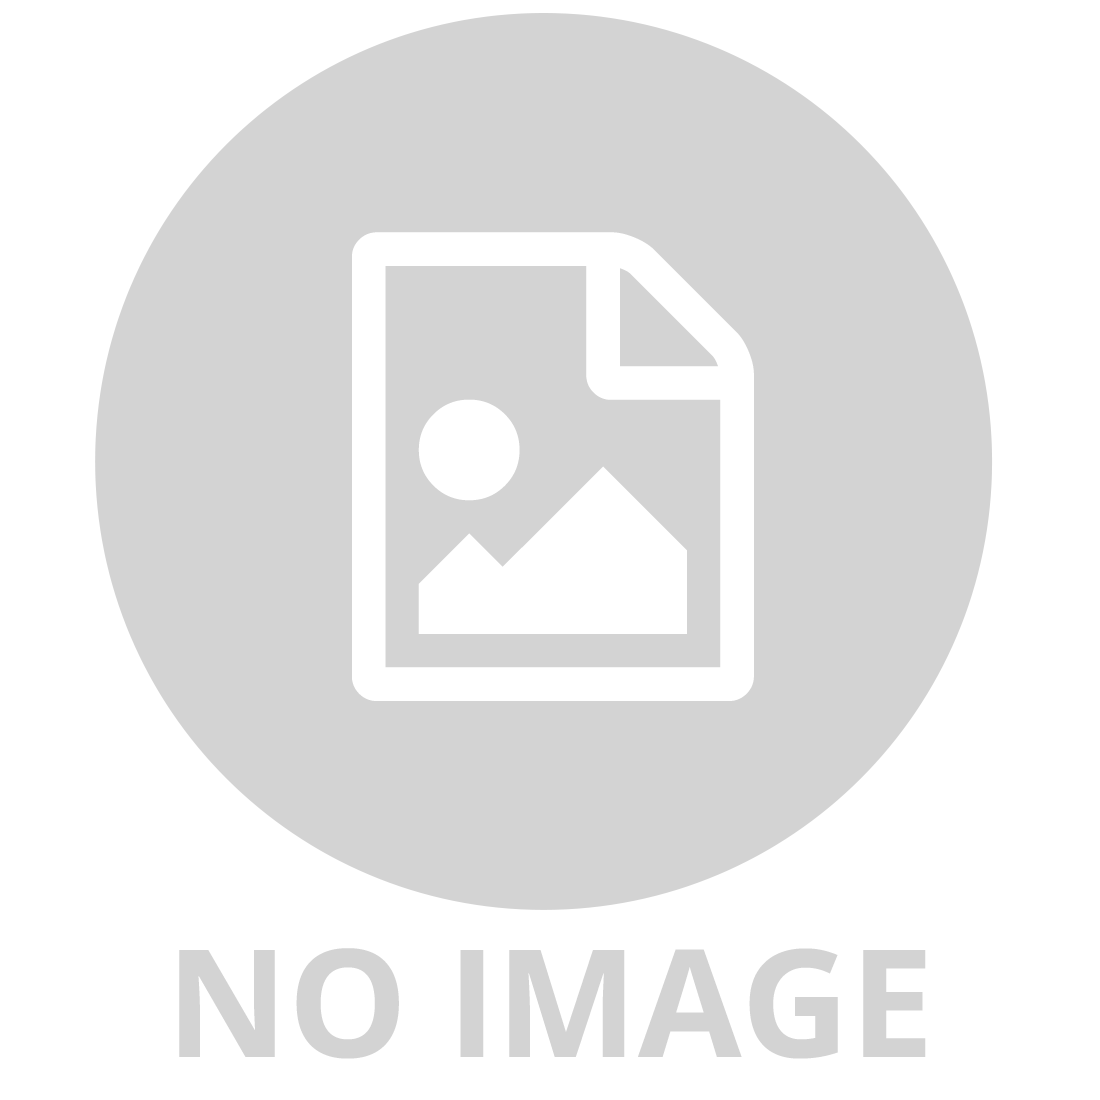 LEGO DISNEY FROZEN 41168 ELSA'S JEWELRY BOX CREATION